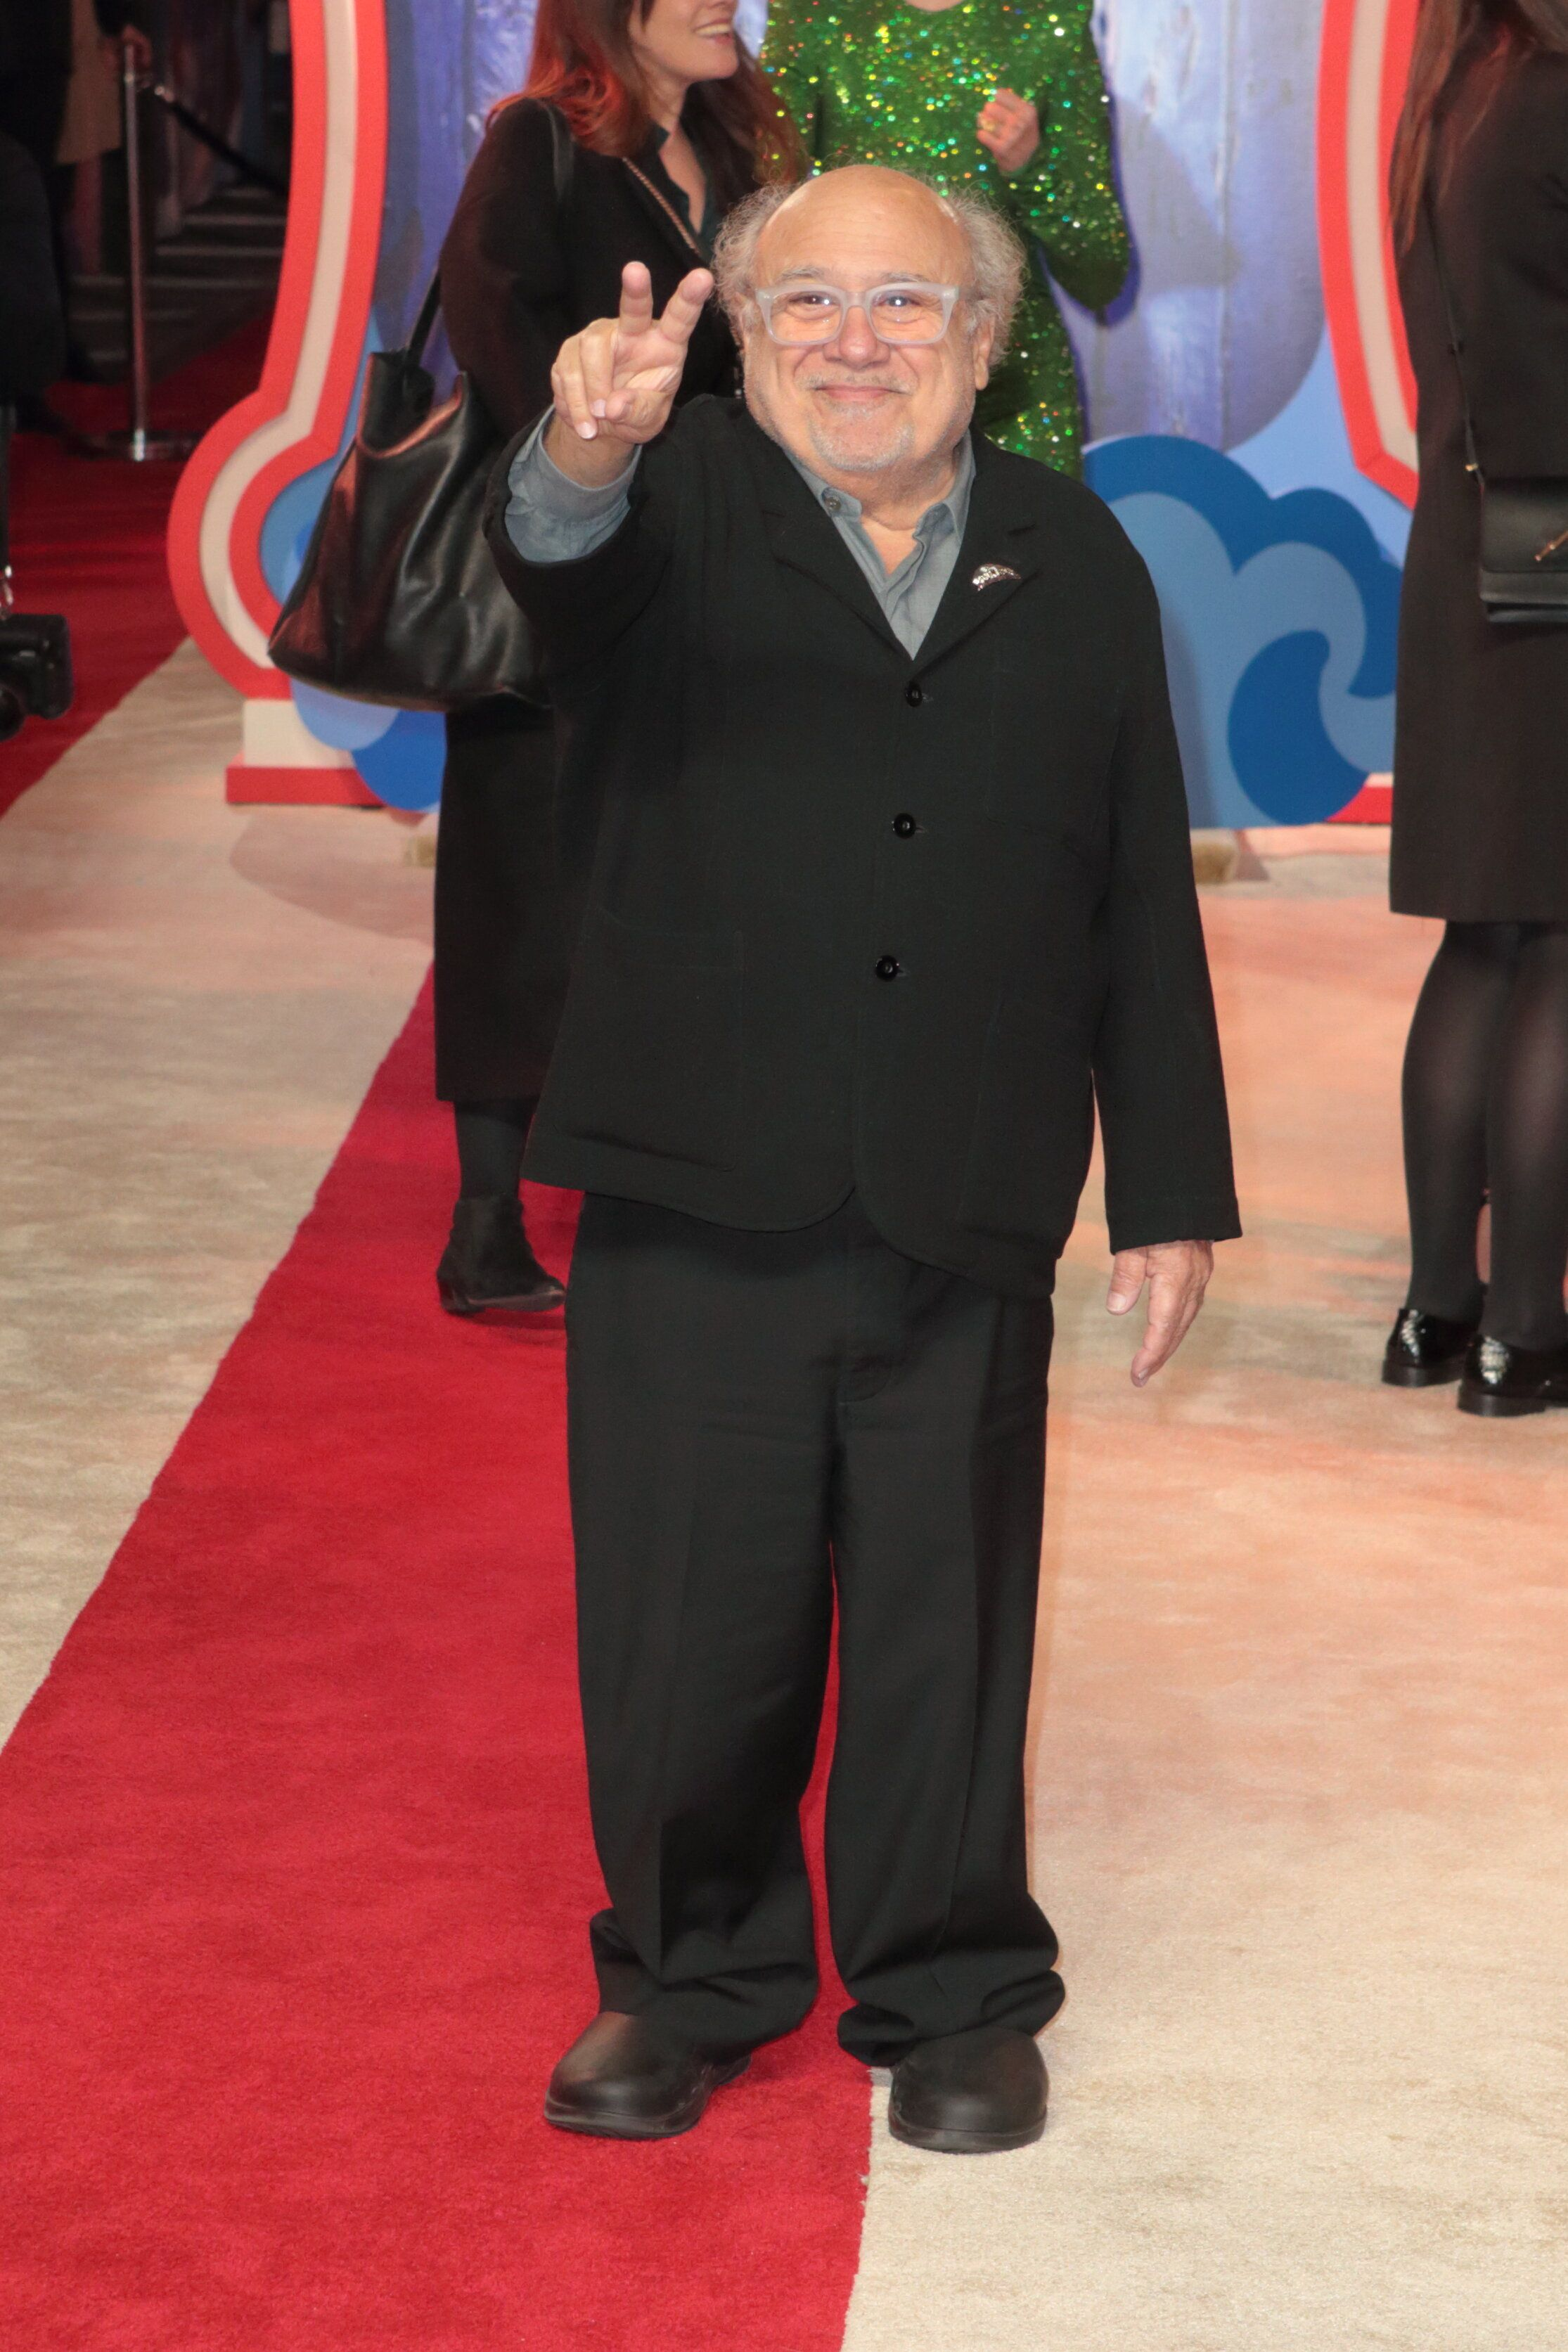 LONDON, UNITED KINGDOM - MARCH 21:                          Danny Devito arrives for the European Premiere of Dumbo at Curzon Mayfair LondonPHOTOGRAPH BY Jamy / Barcroft Images (Photo credit should read Jamy / Barcroft Media via Getty Images)